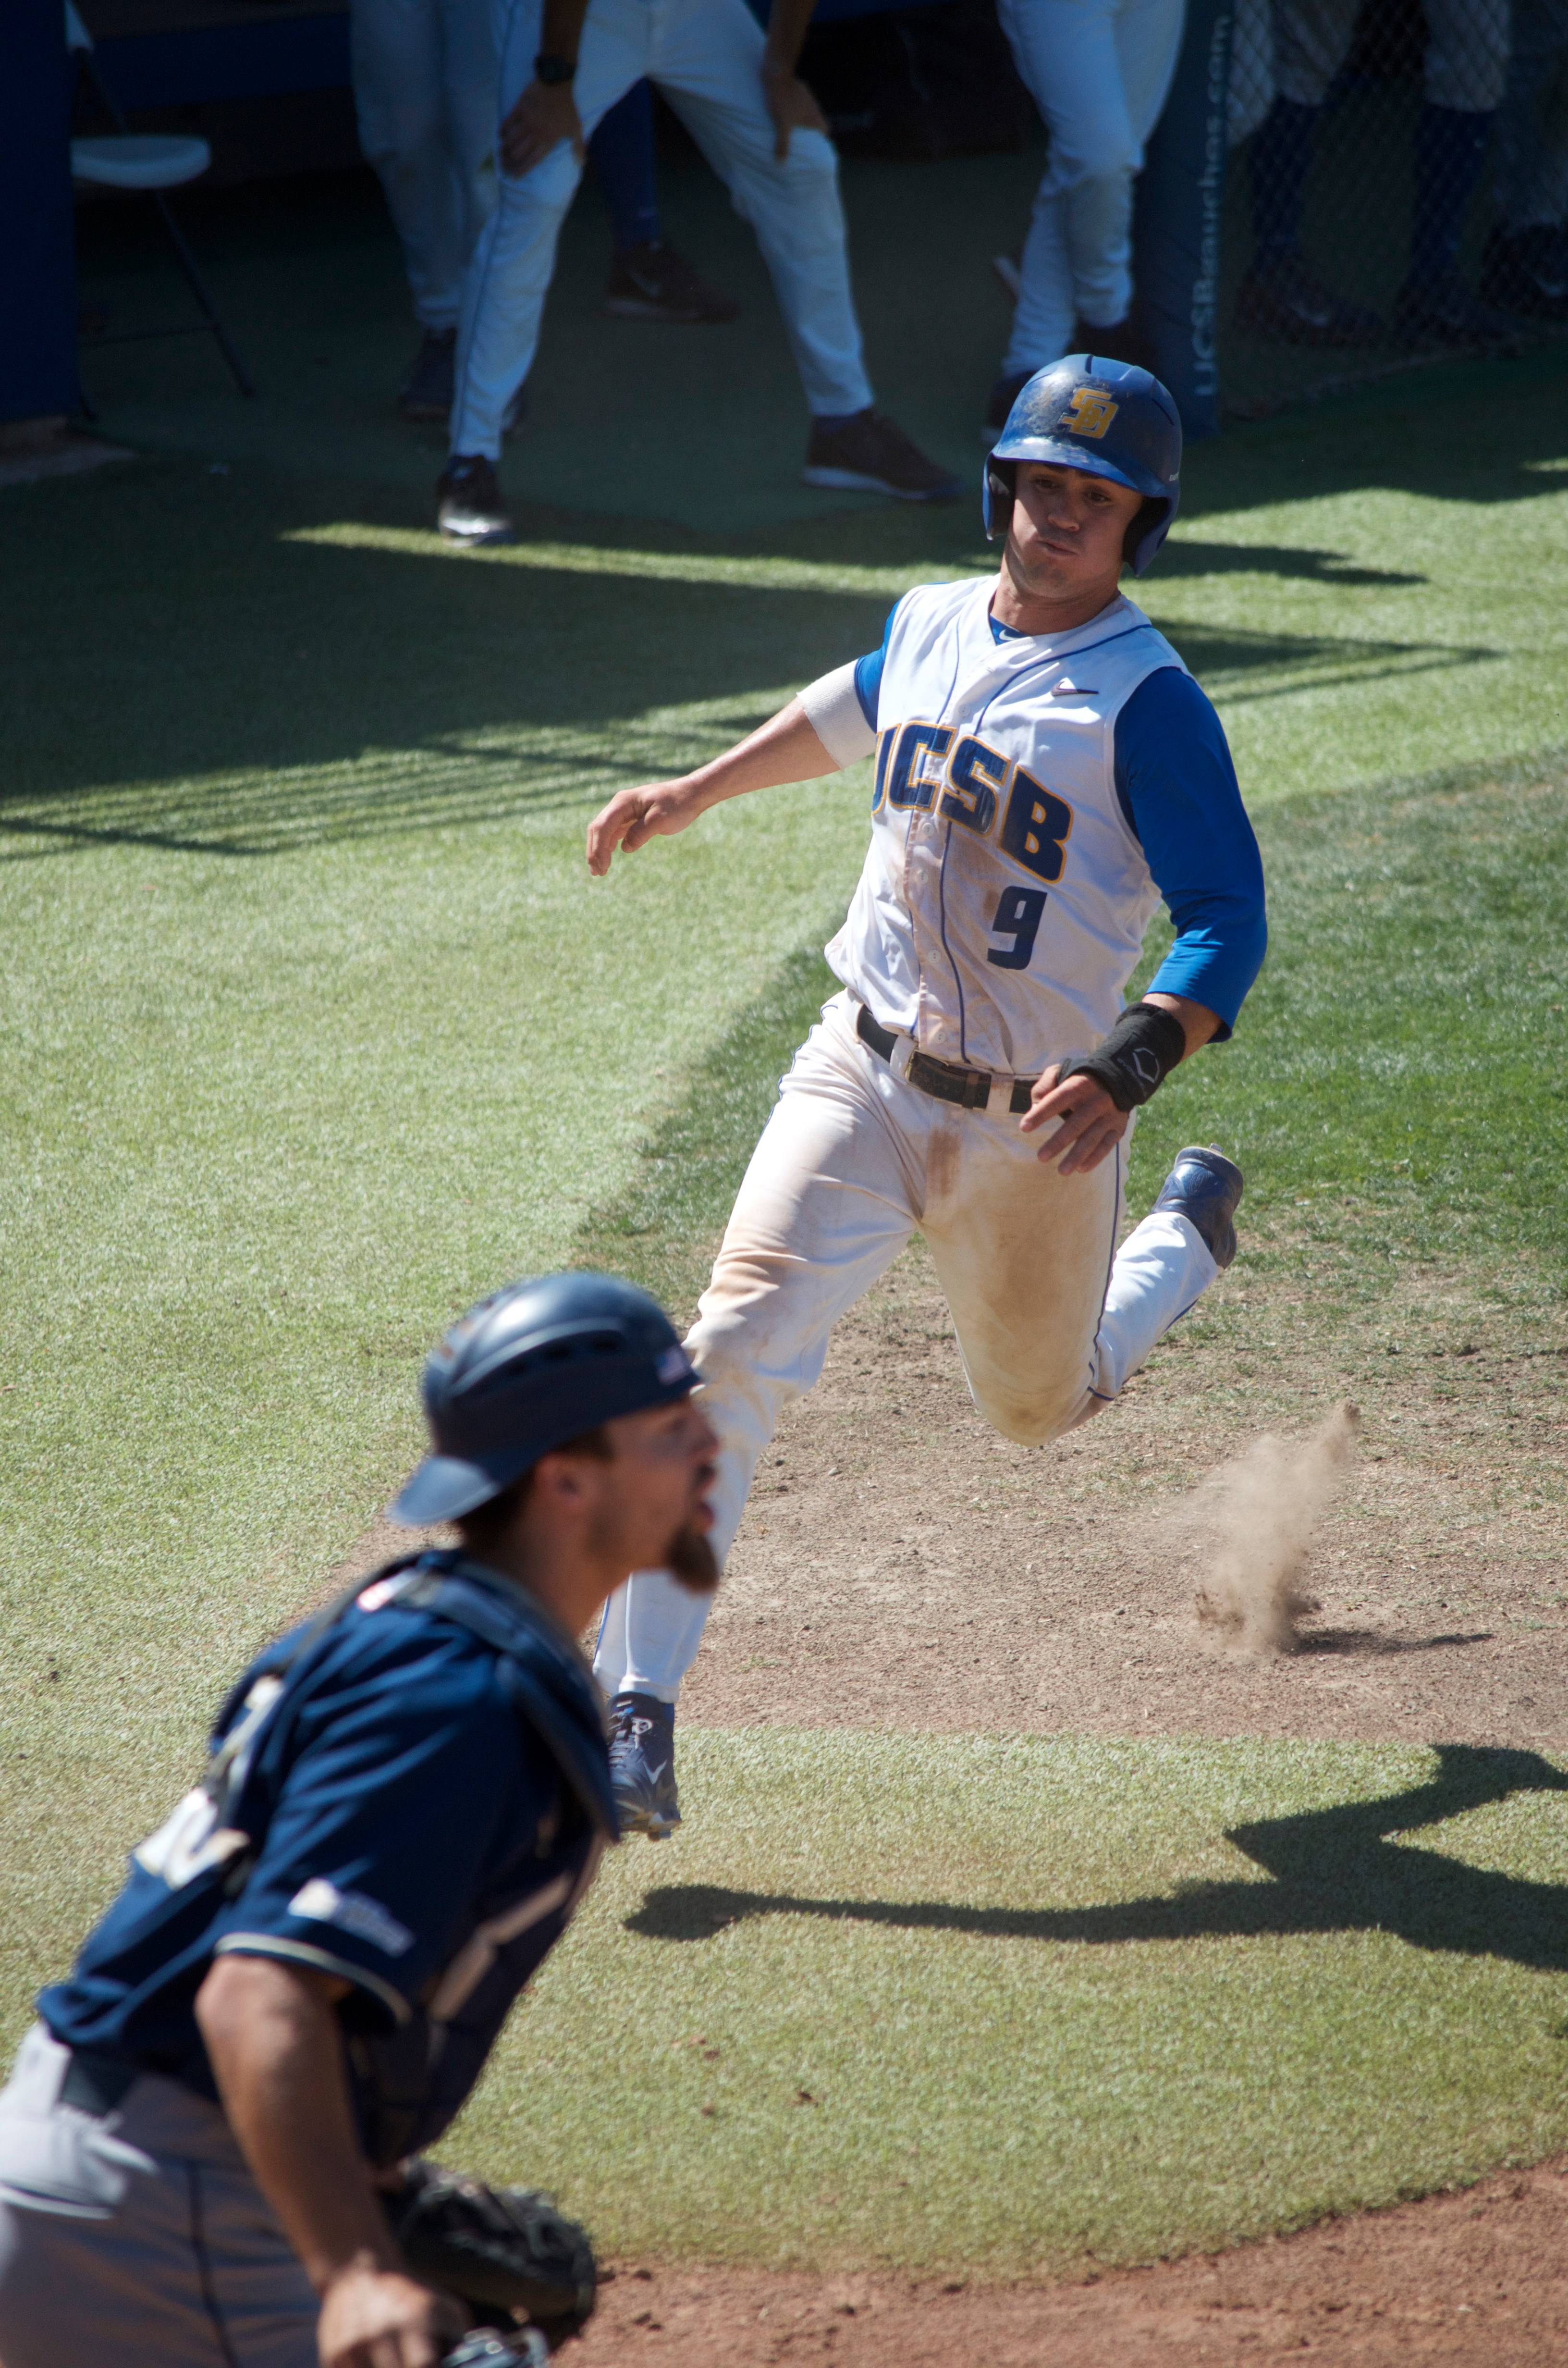 Woody Woodward runs into home plate, scoring a point for the Gauchos. Christina DeMarzo/Daily Nexus